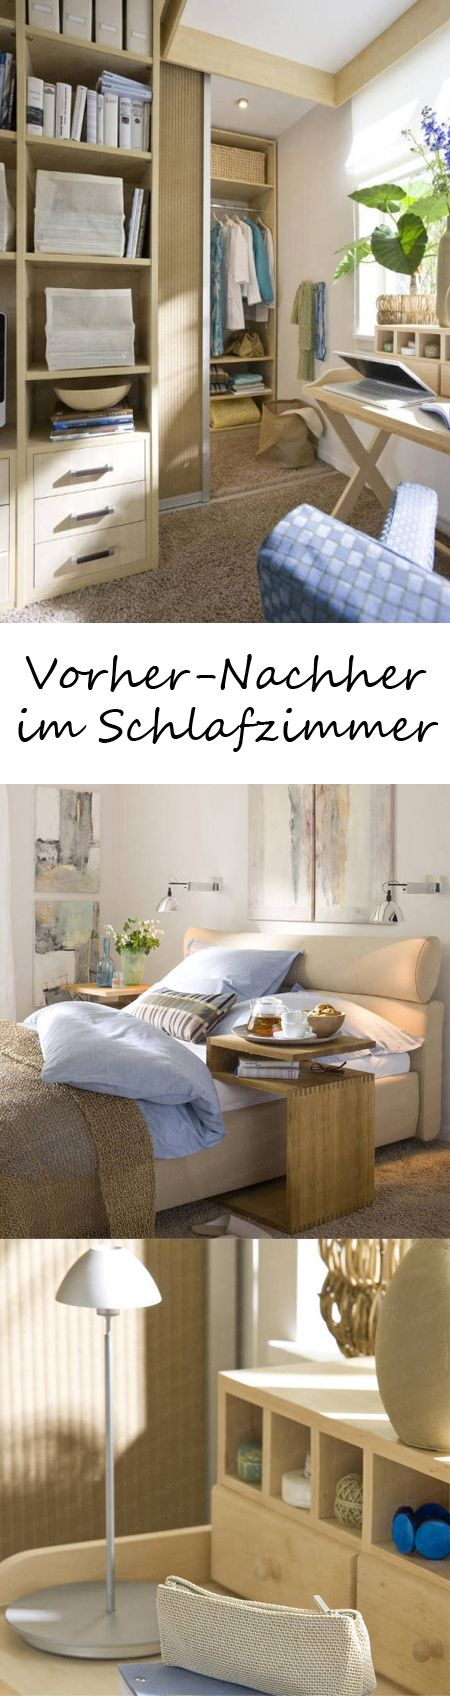 62 best Schlafzimmer images on Pinterest Homes, Attic and Dekoration - schlafzimmer feng shui